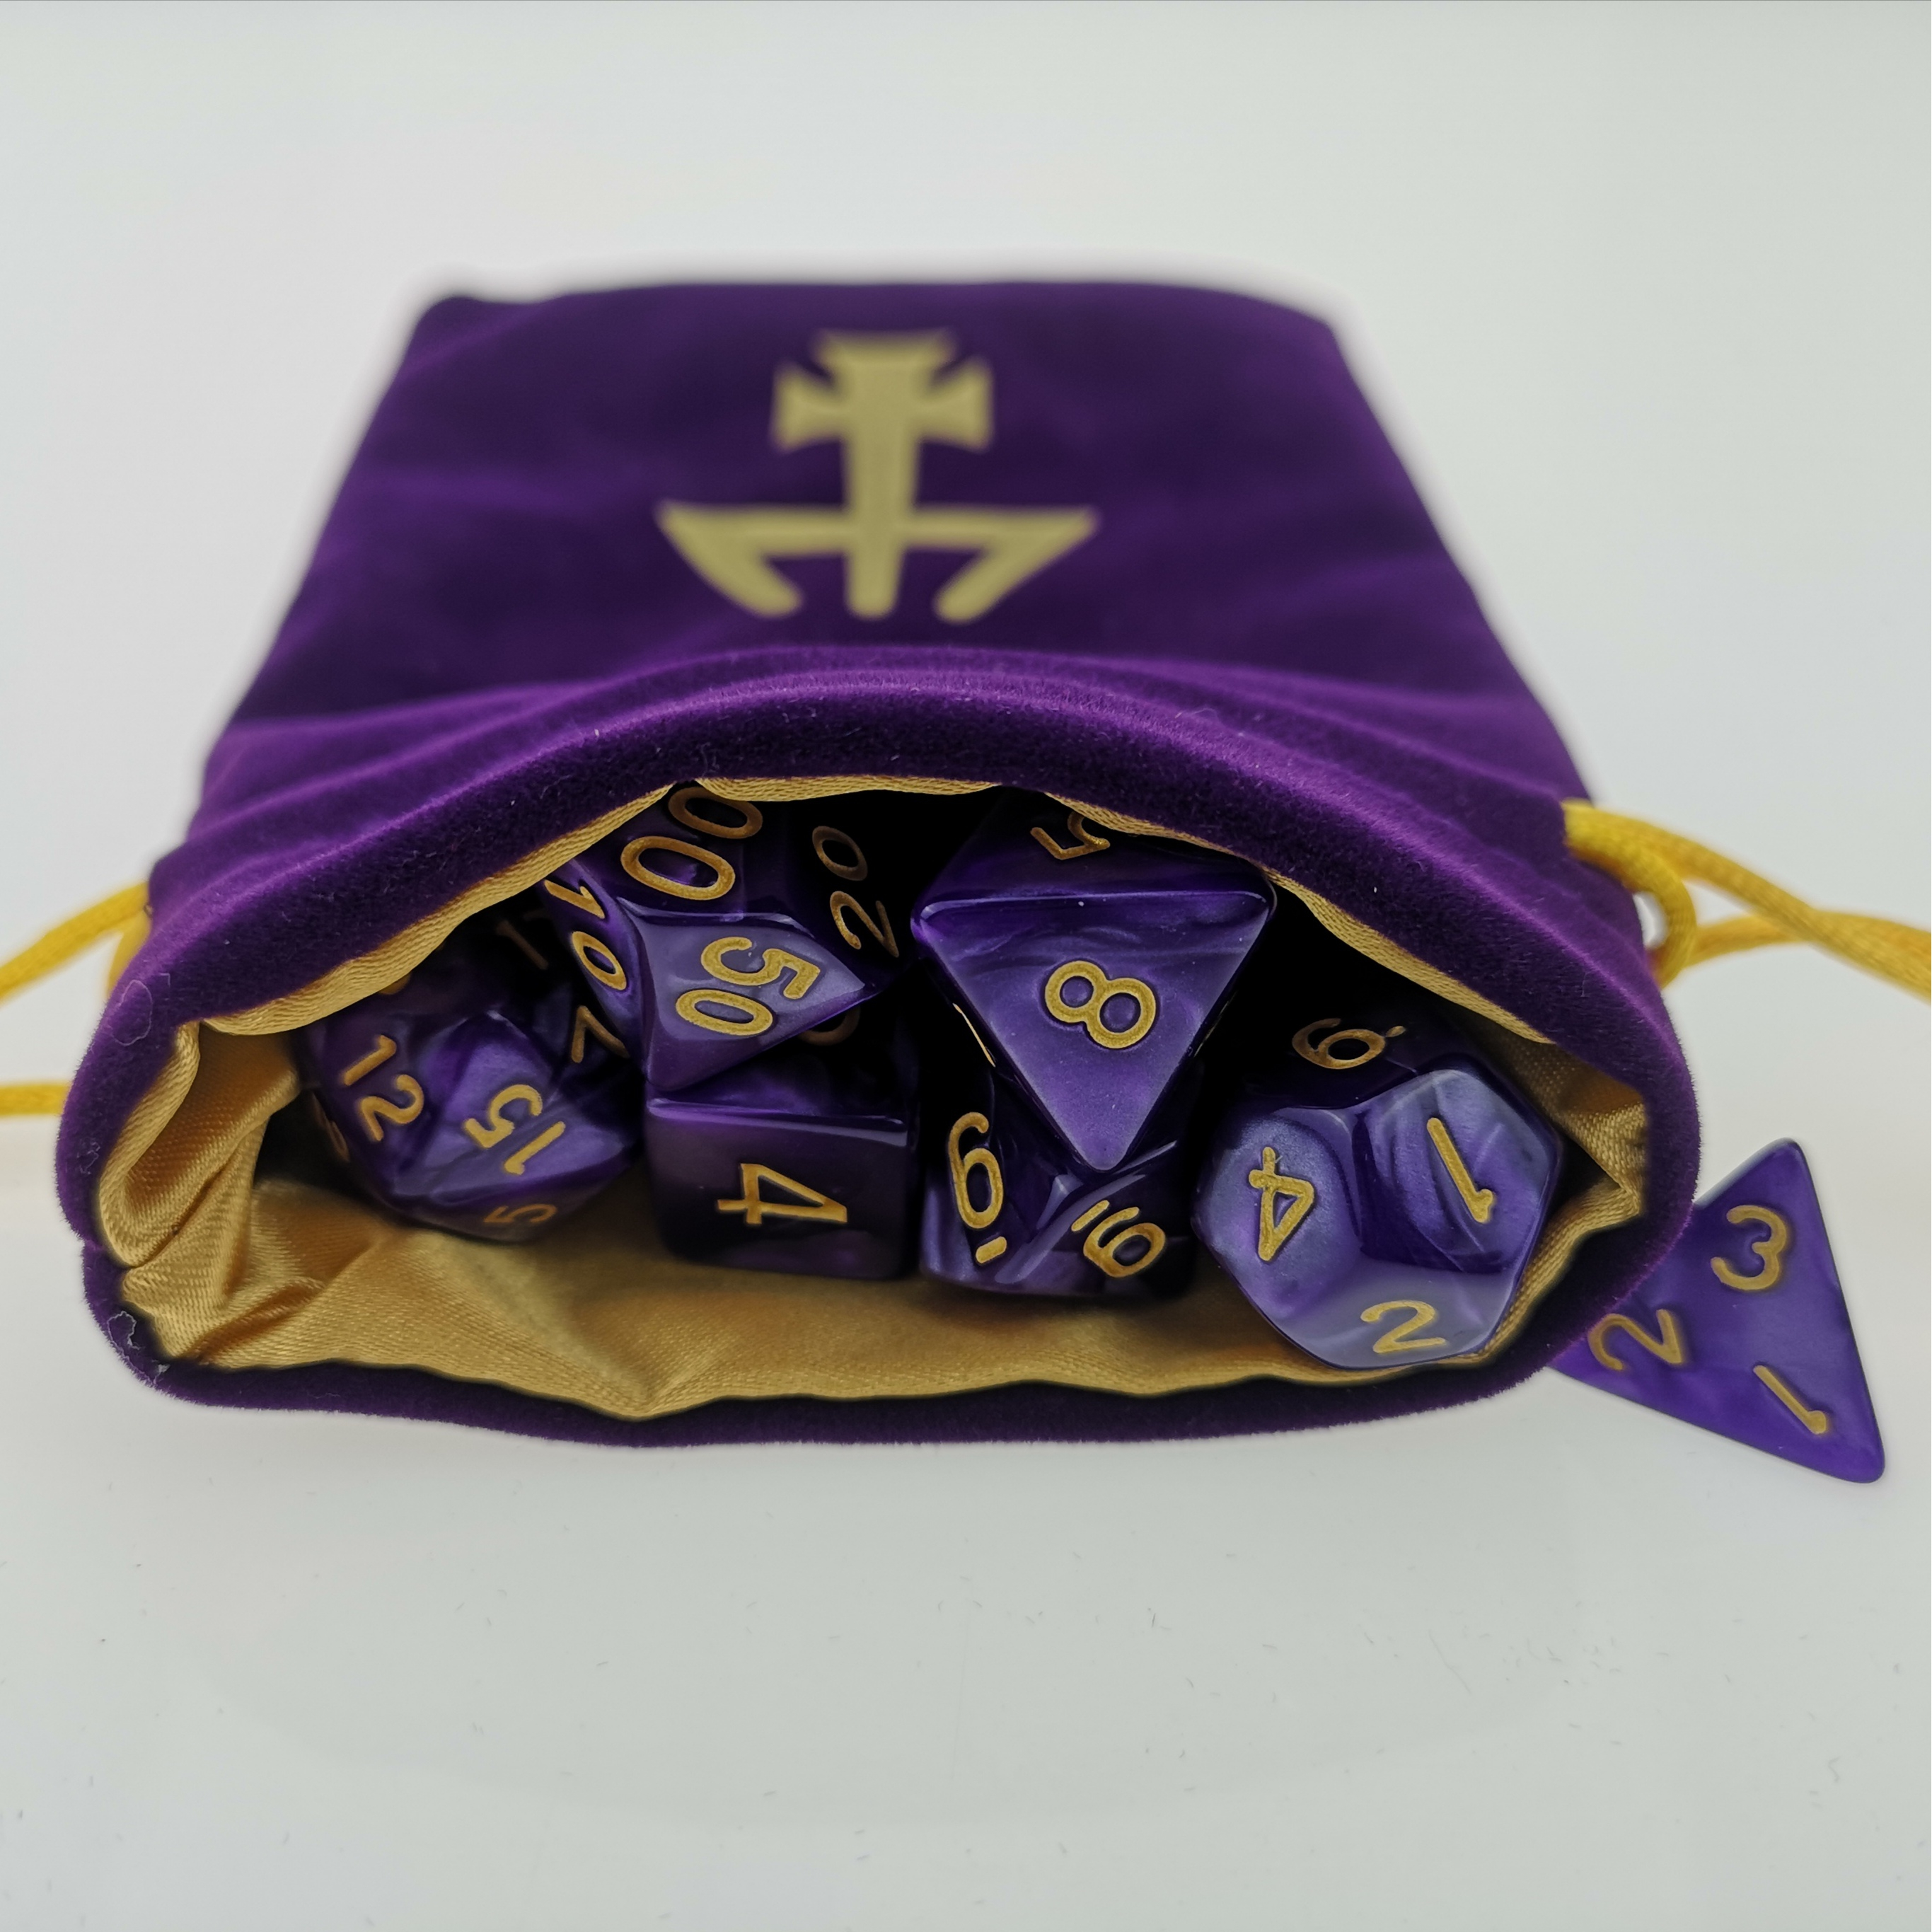 Rollooo Pearlized Purple or Black Dice with Matching Customized Logo DND Bag for RPG Game image